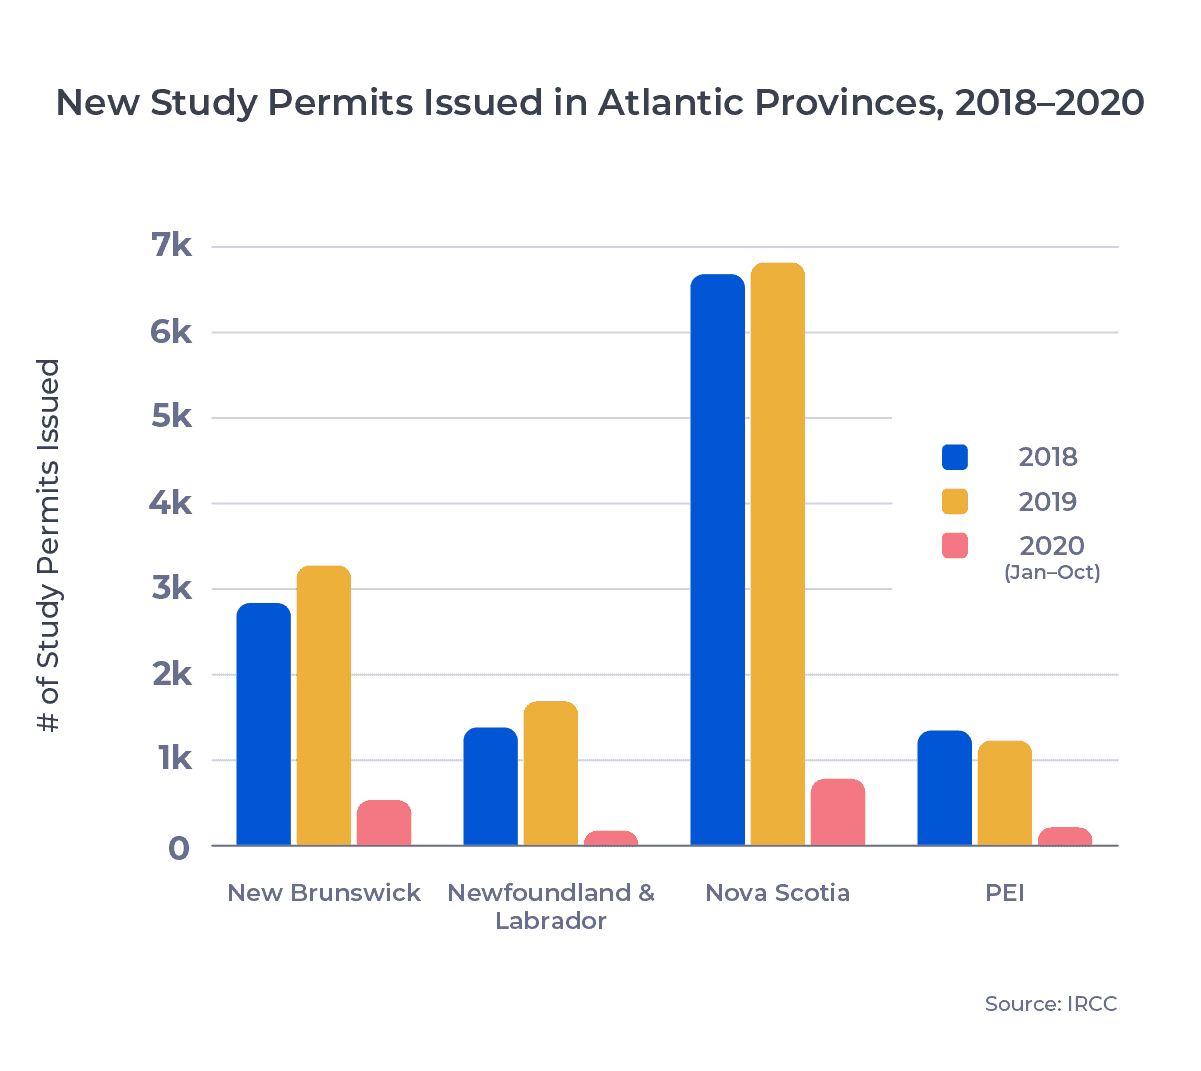 Triple vertical bar chart showing New Study Permits Issued in Atlantic Provinces, 2018–2020